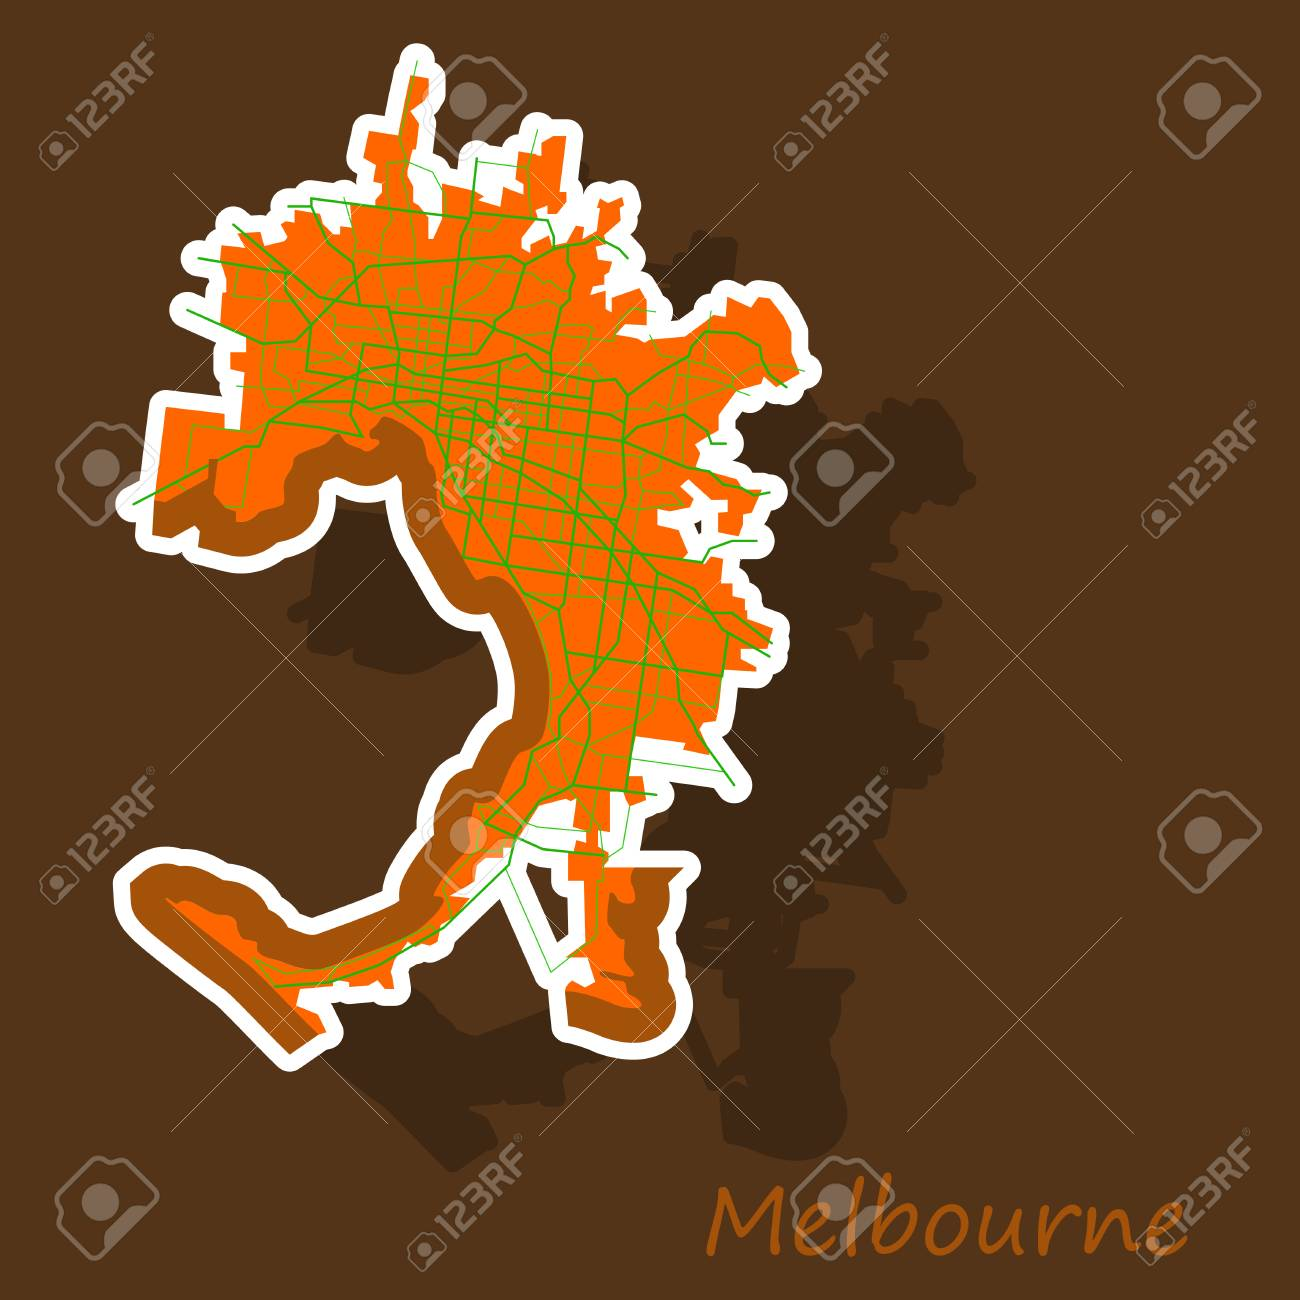 Australia Melbourne Map.Melbourne Australia Map In Retro Style Sticker Illustration